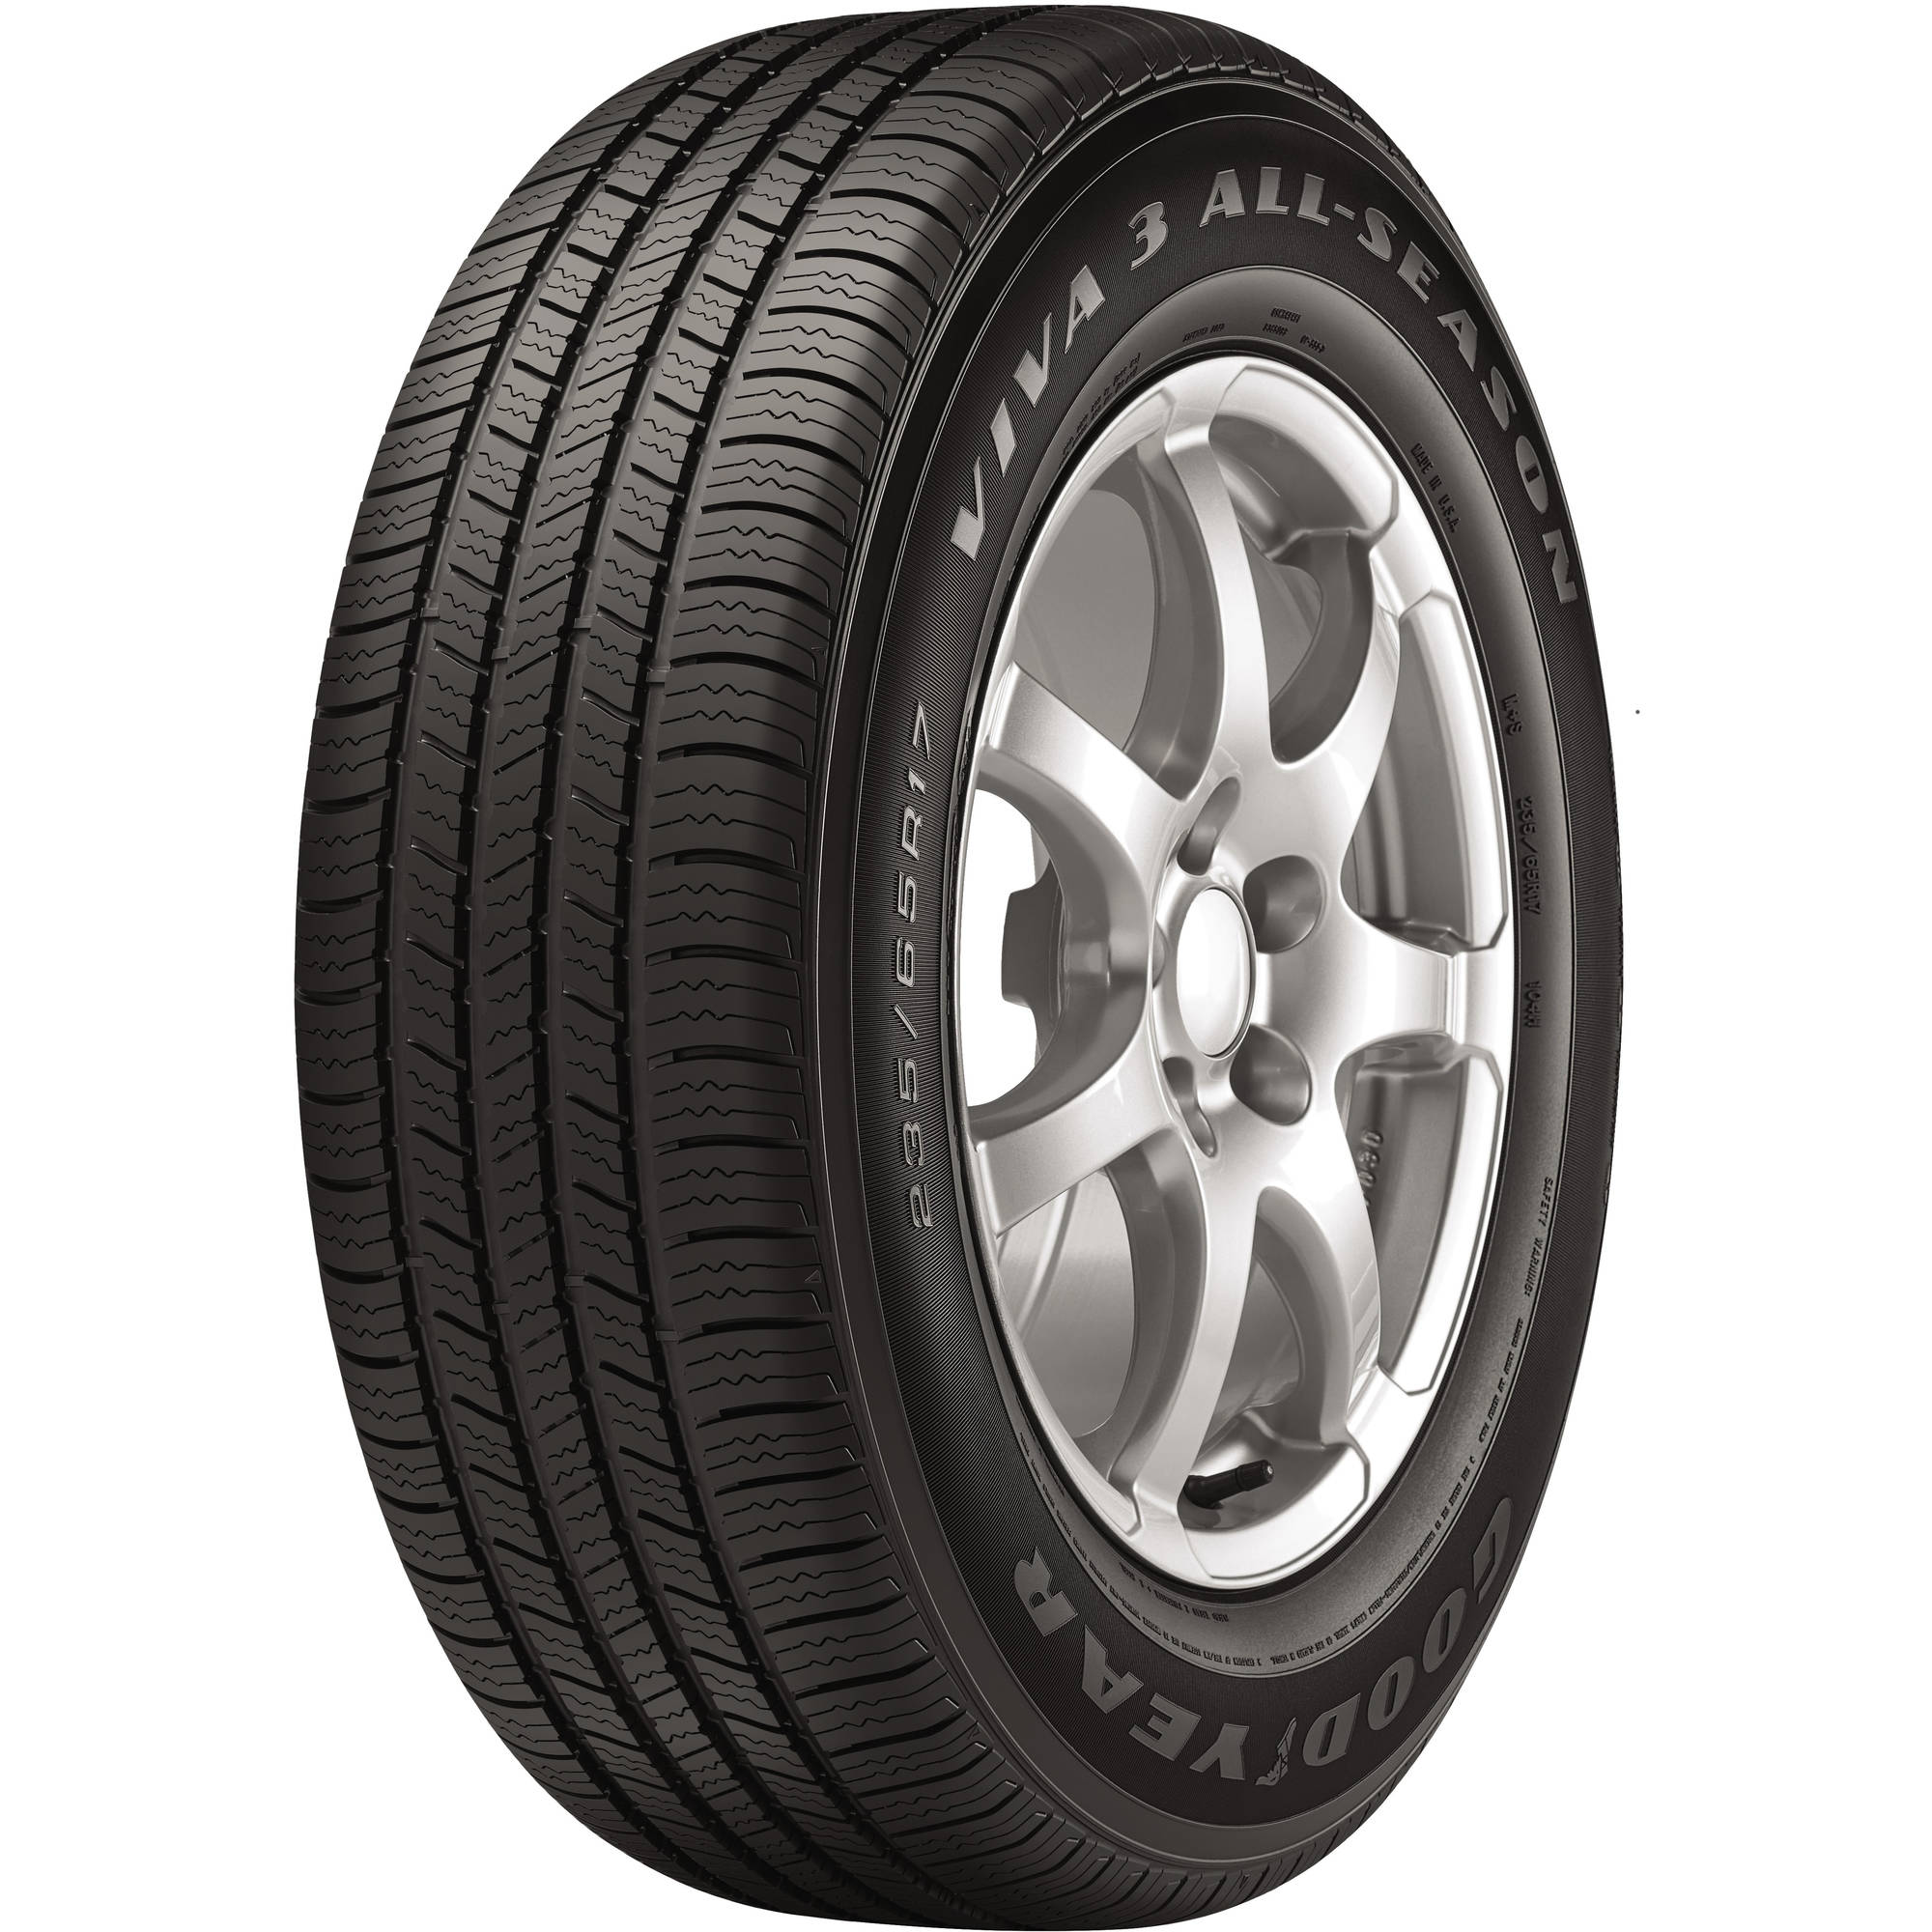 Goodyear Viva 3 All-Season Tire 215/55R16 93H